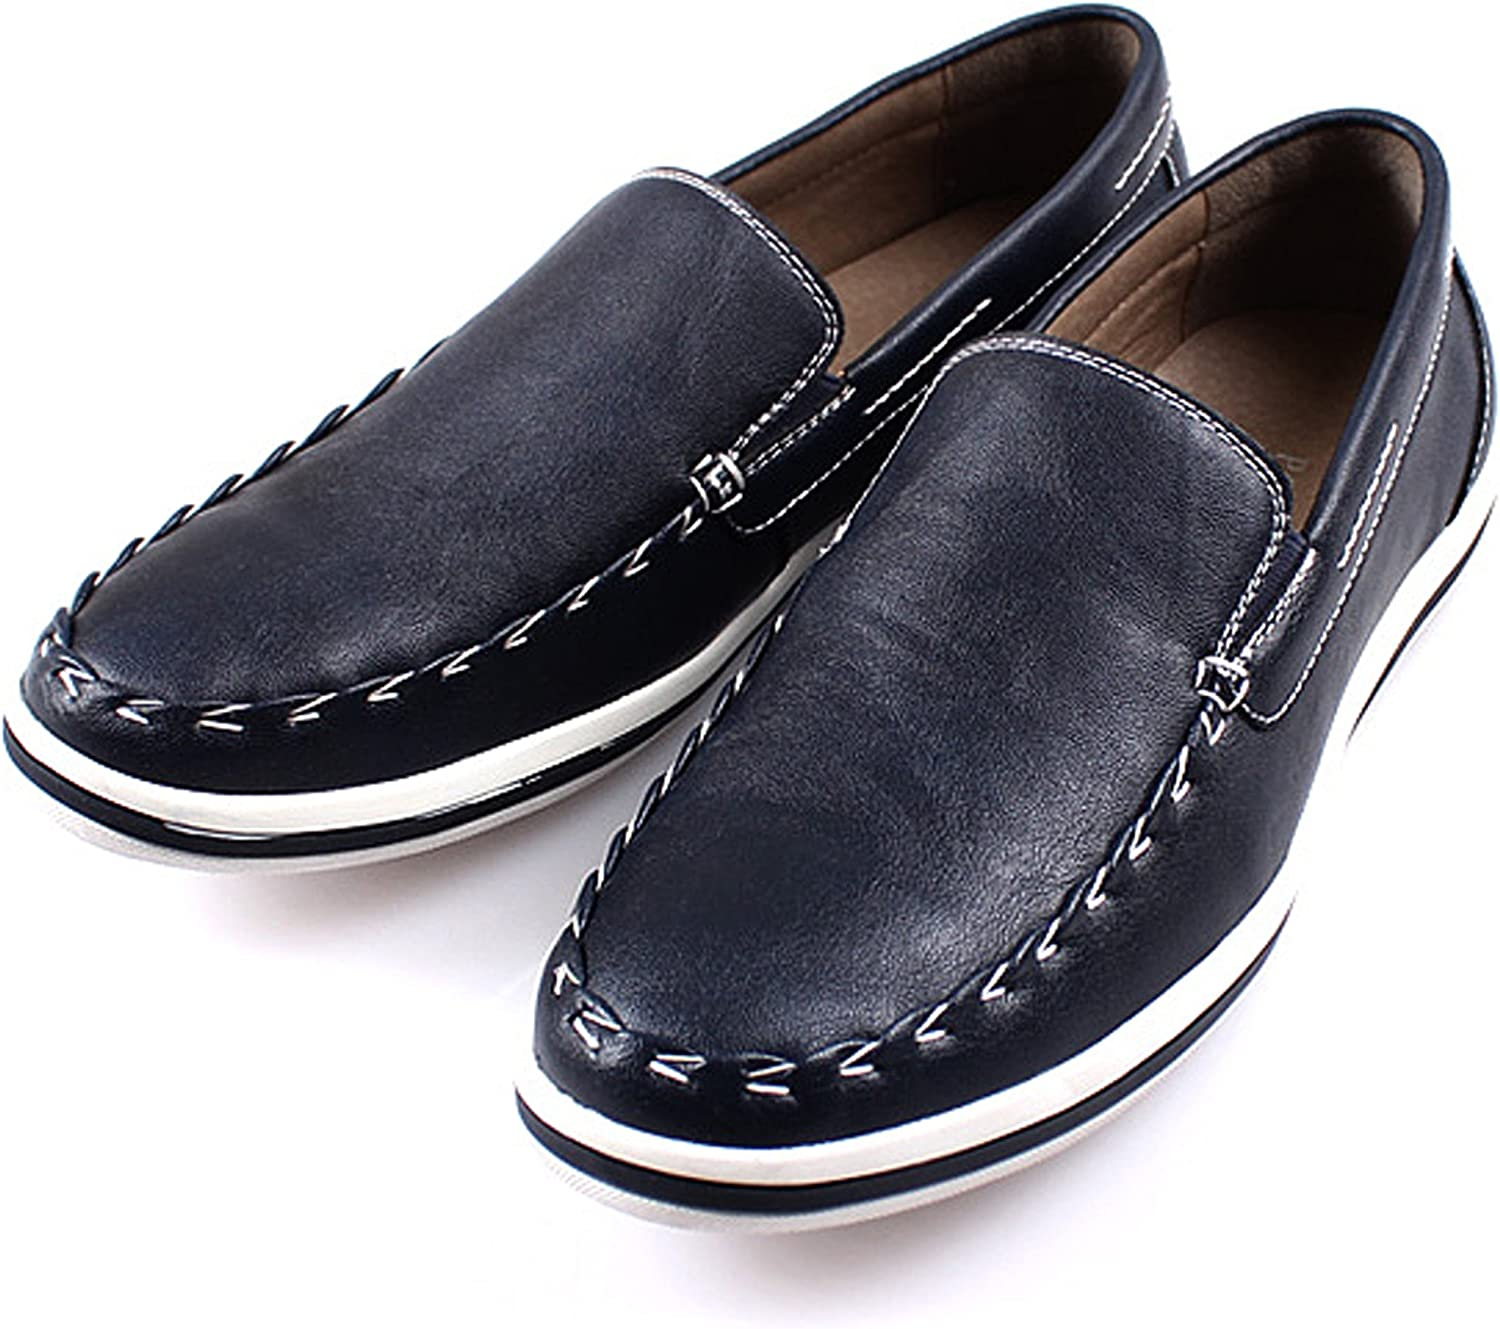 JustOneStyle New Polytec Comfort Basic Casual Formal Men Dress Penny Loafer Slip on Shoes